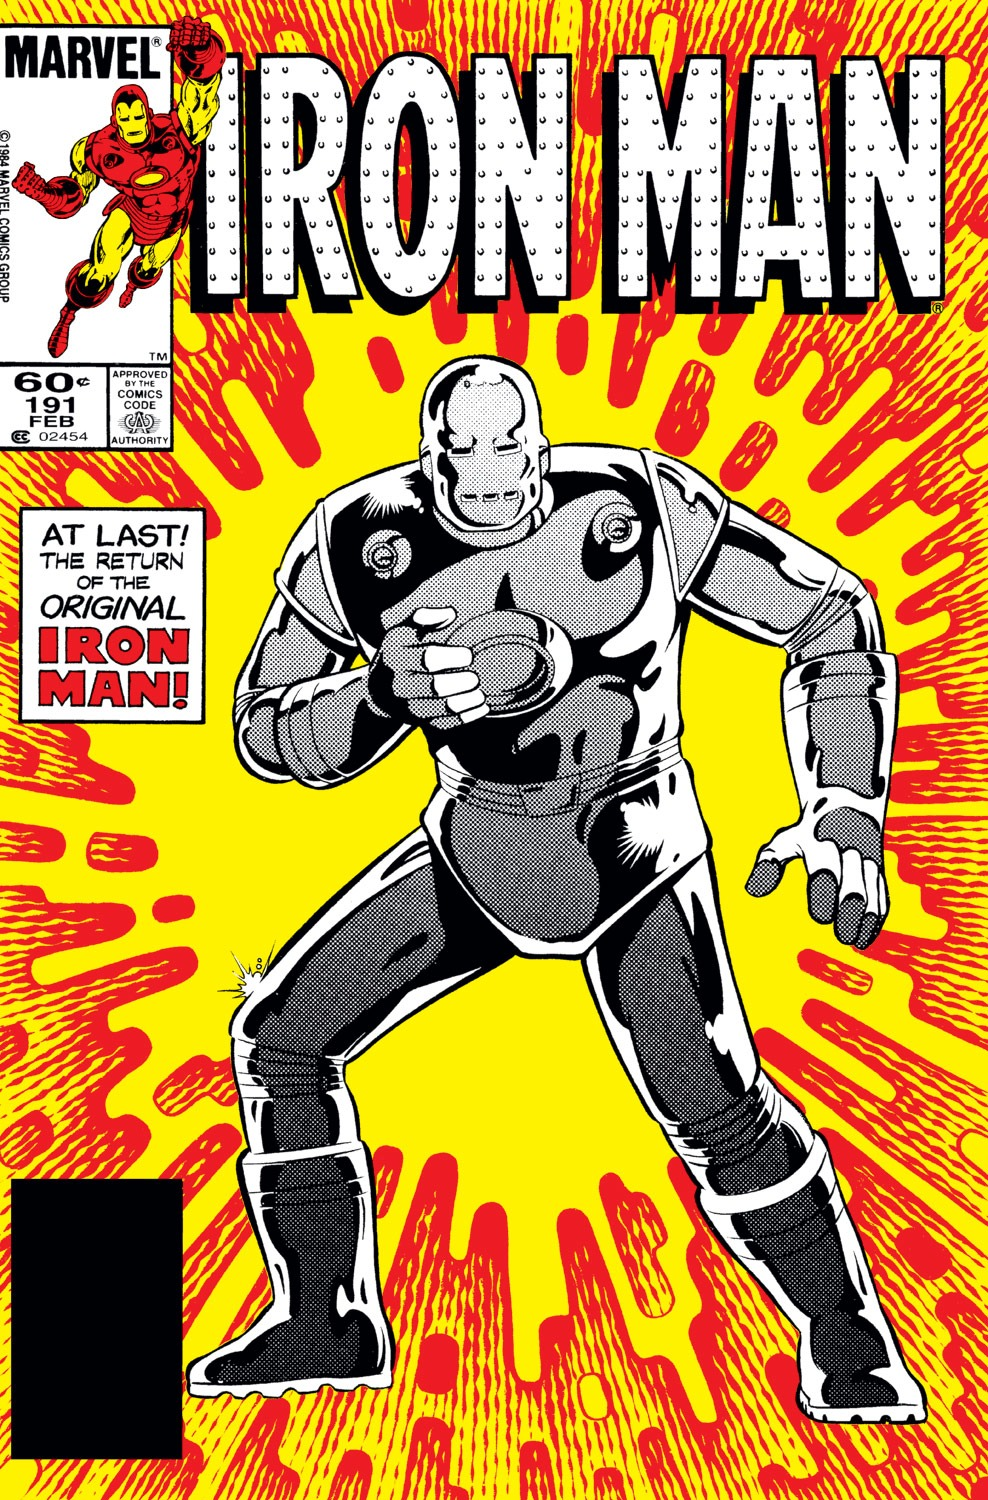 Iron man vol 1 191 marvel database fandom powered by wikia - Iron man 1 images ...